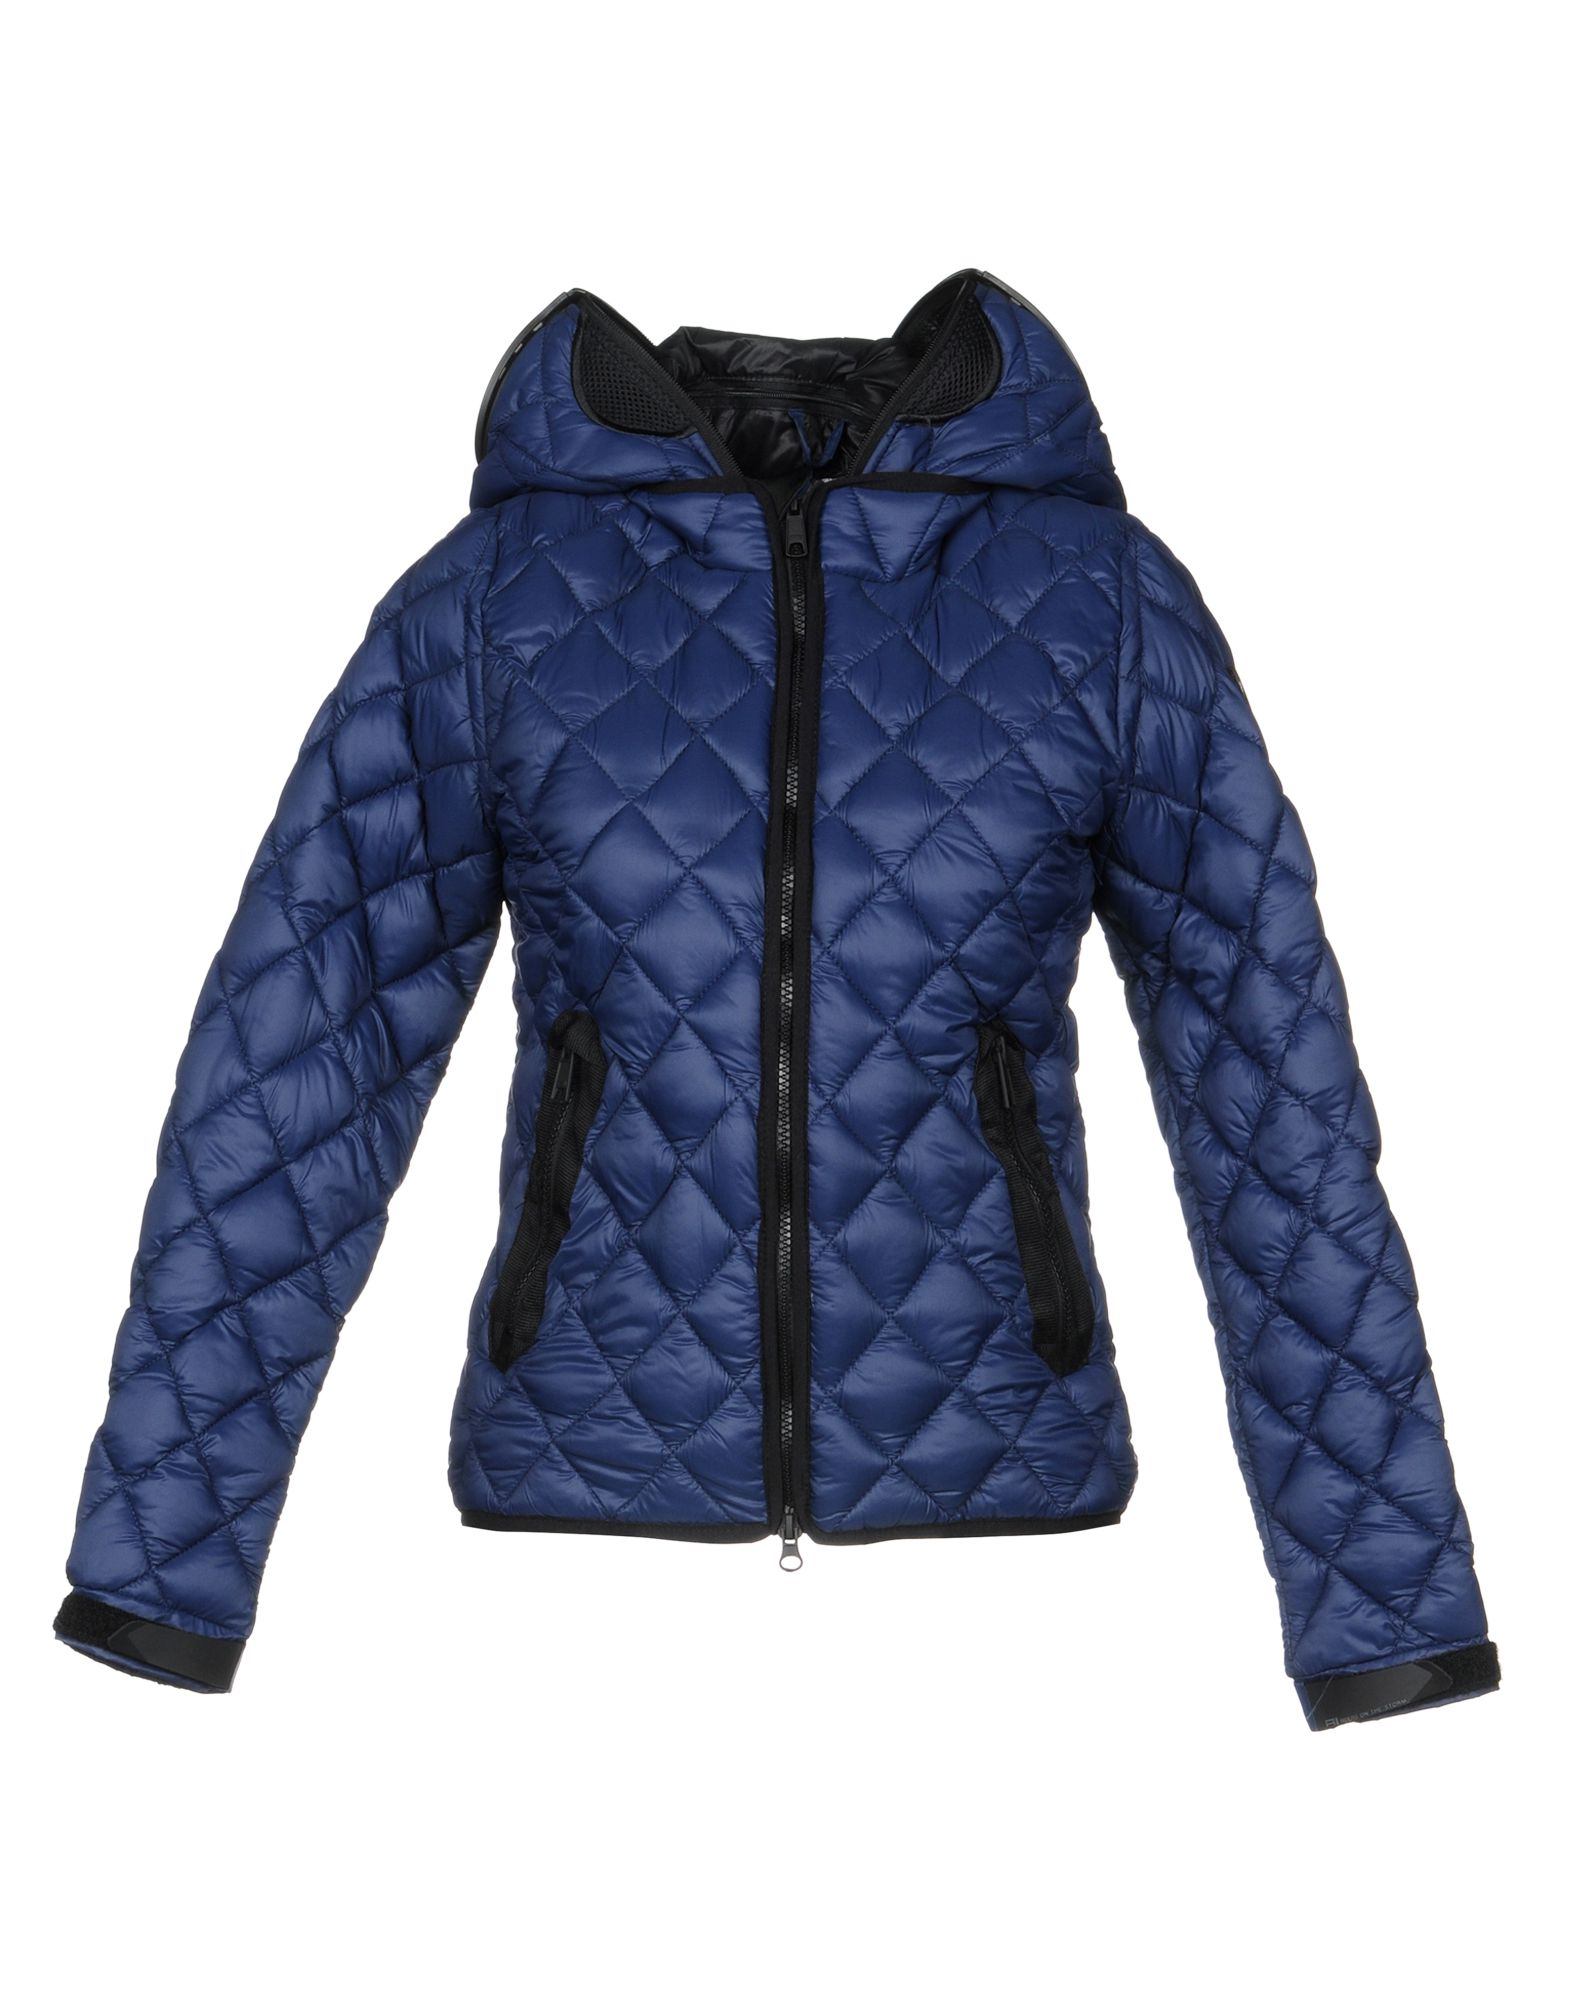 AI RIDERS ON THE STORM Synthetic Padding in Dark Blue